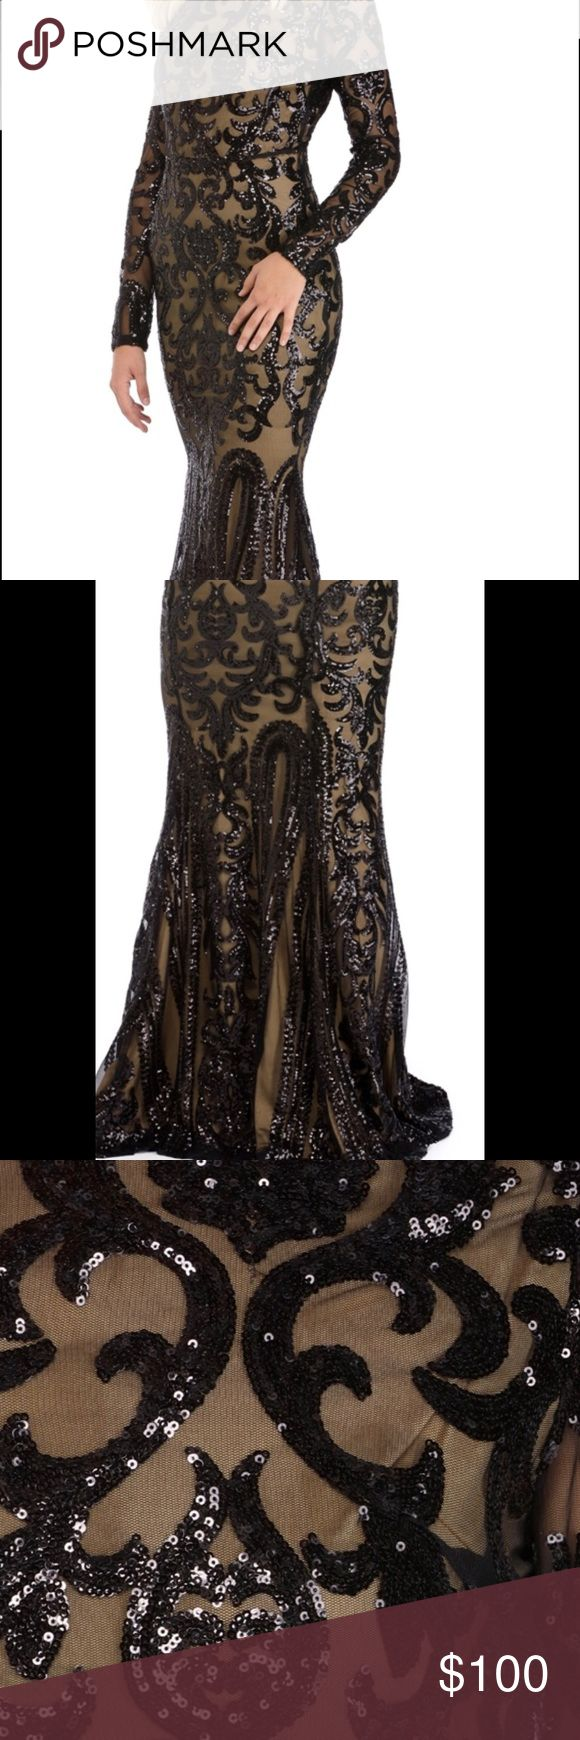 ❌❌SOLD❌❌ Black and Nude Sequin Dress Rule the night in this beautiful two tone dress, mock neck, long sleeves, a sheer mesh-like overlay and an alluring mermaid fit. She has a scroll pattern with sequin detailing, a contrasting sleeveless nude lining and floor length. WINDSOR Dresses Long Sleeve